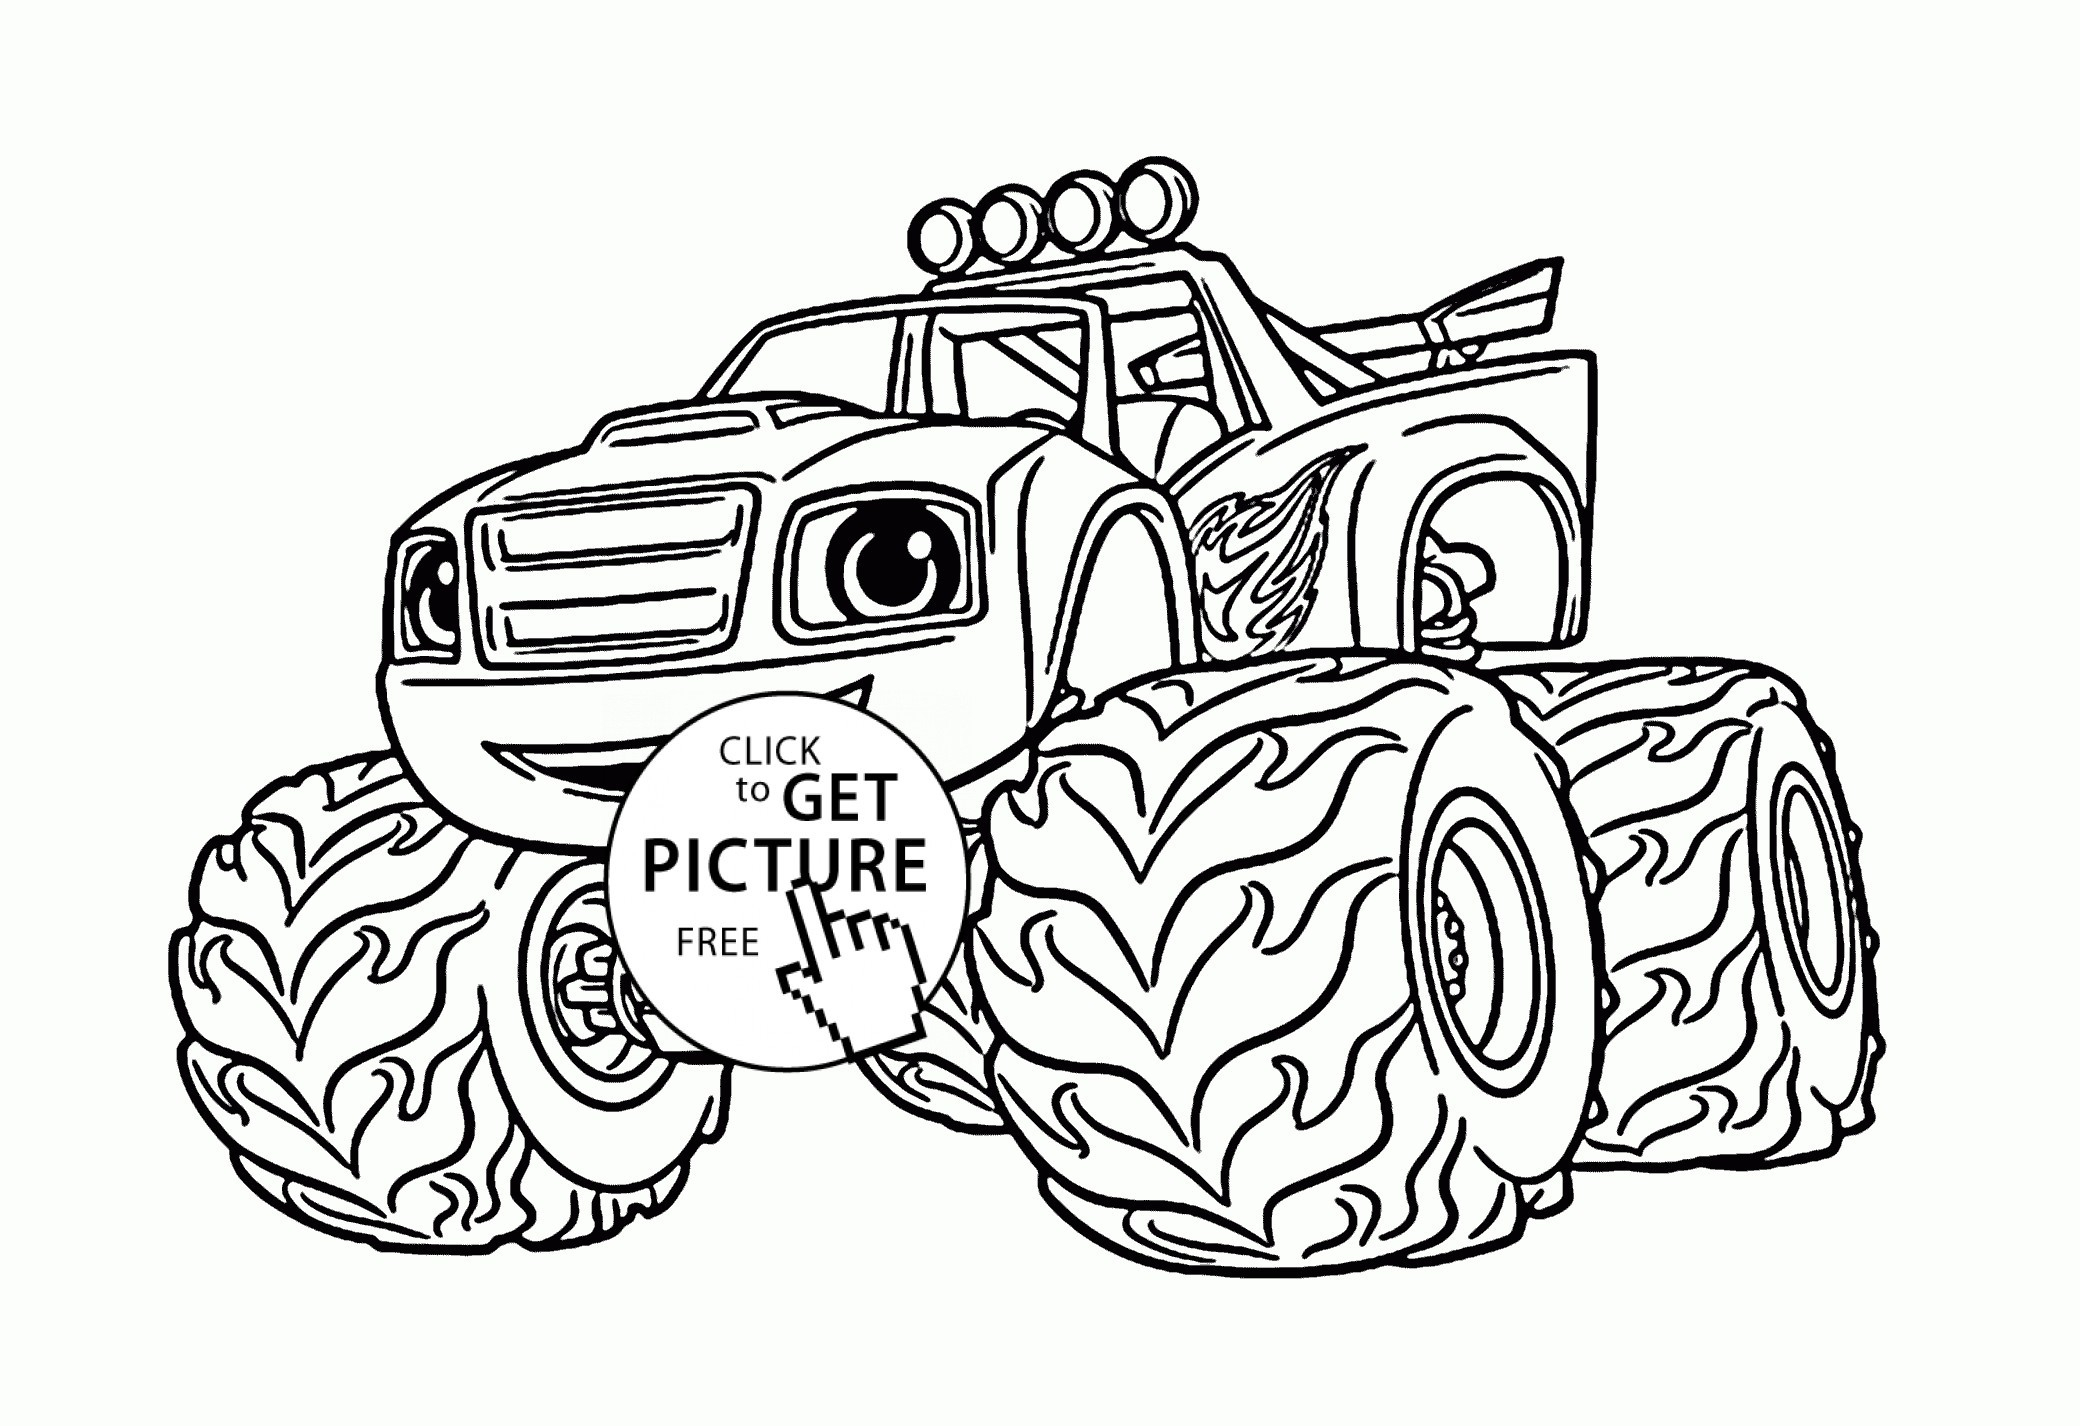 Adult Coloring Pages Trucks Coloring Books Printable Coloringes Free Truck For Toddlers My